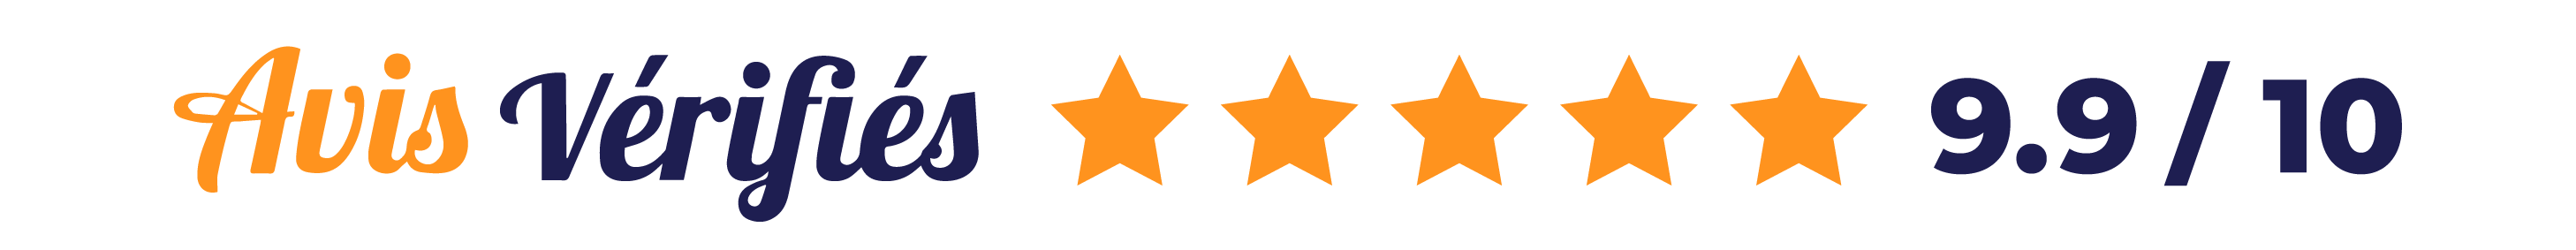 reviews-logo